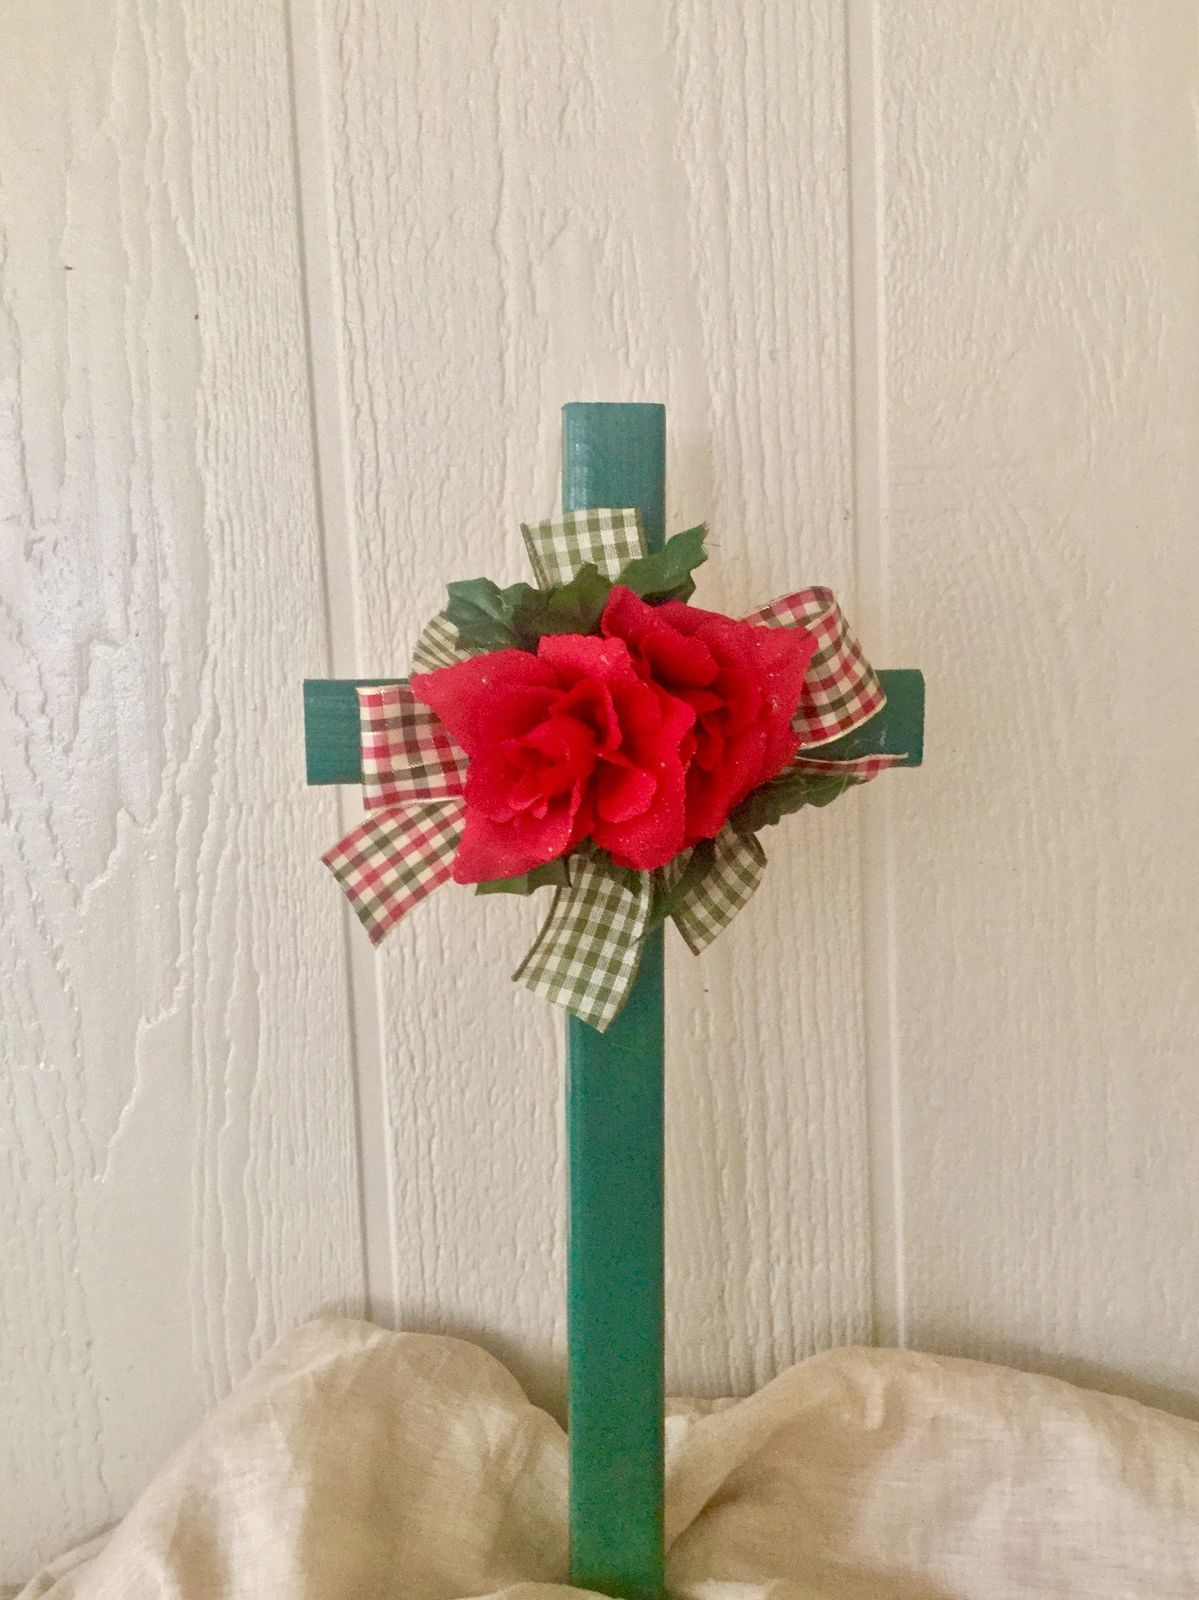 Pin by Leslie Ferrell on christmas | Cemetery decorations